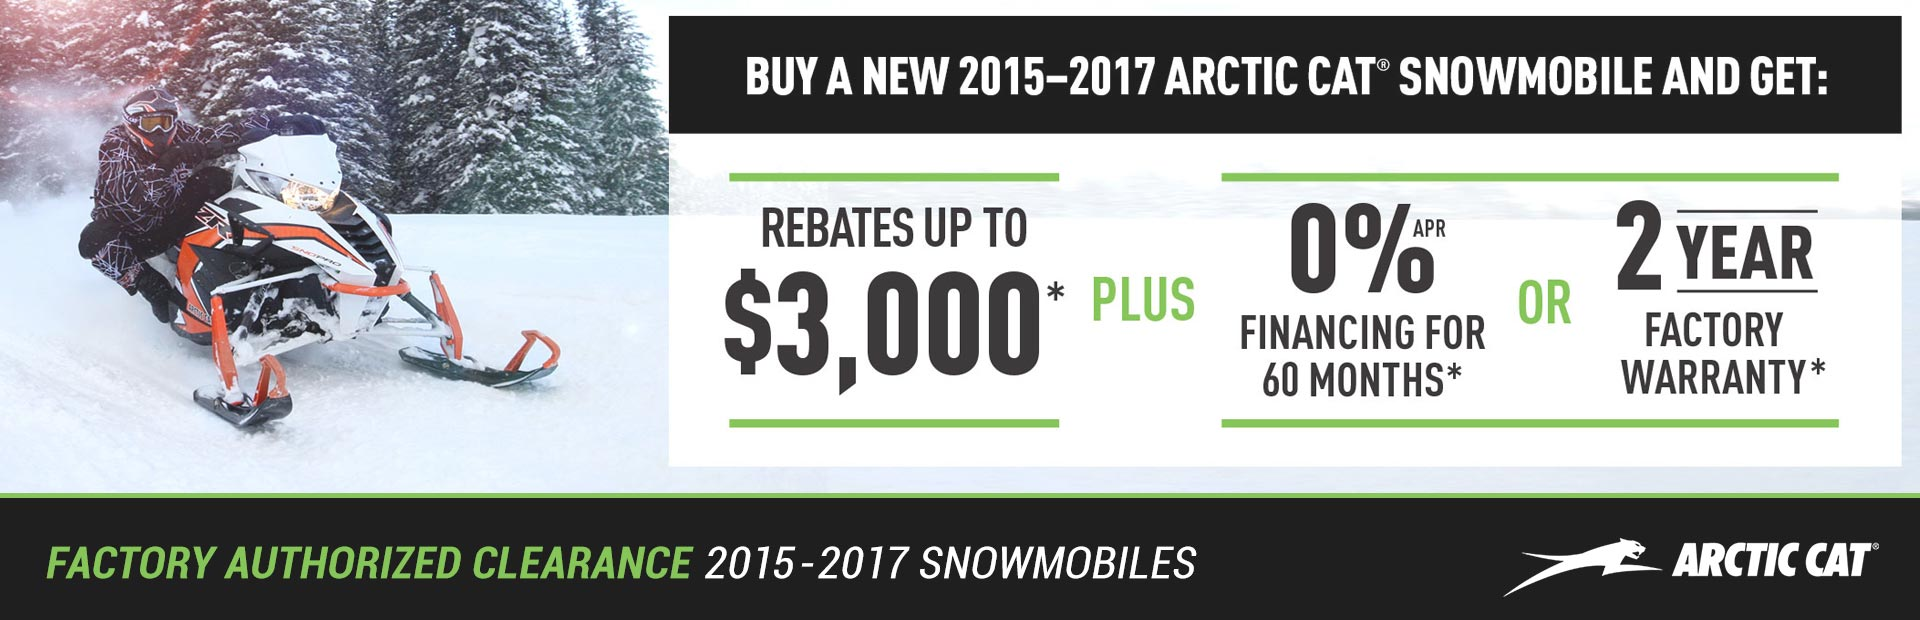 Arctic Cat: Factory Authorized Clearance 2015-2018 Snowmobiles